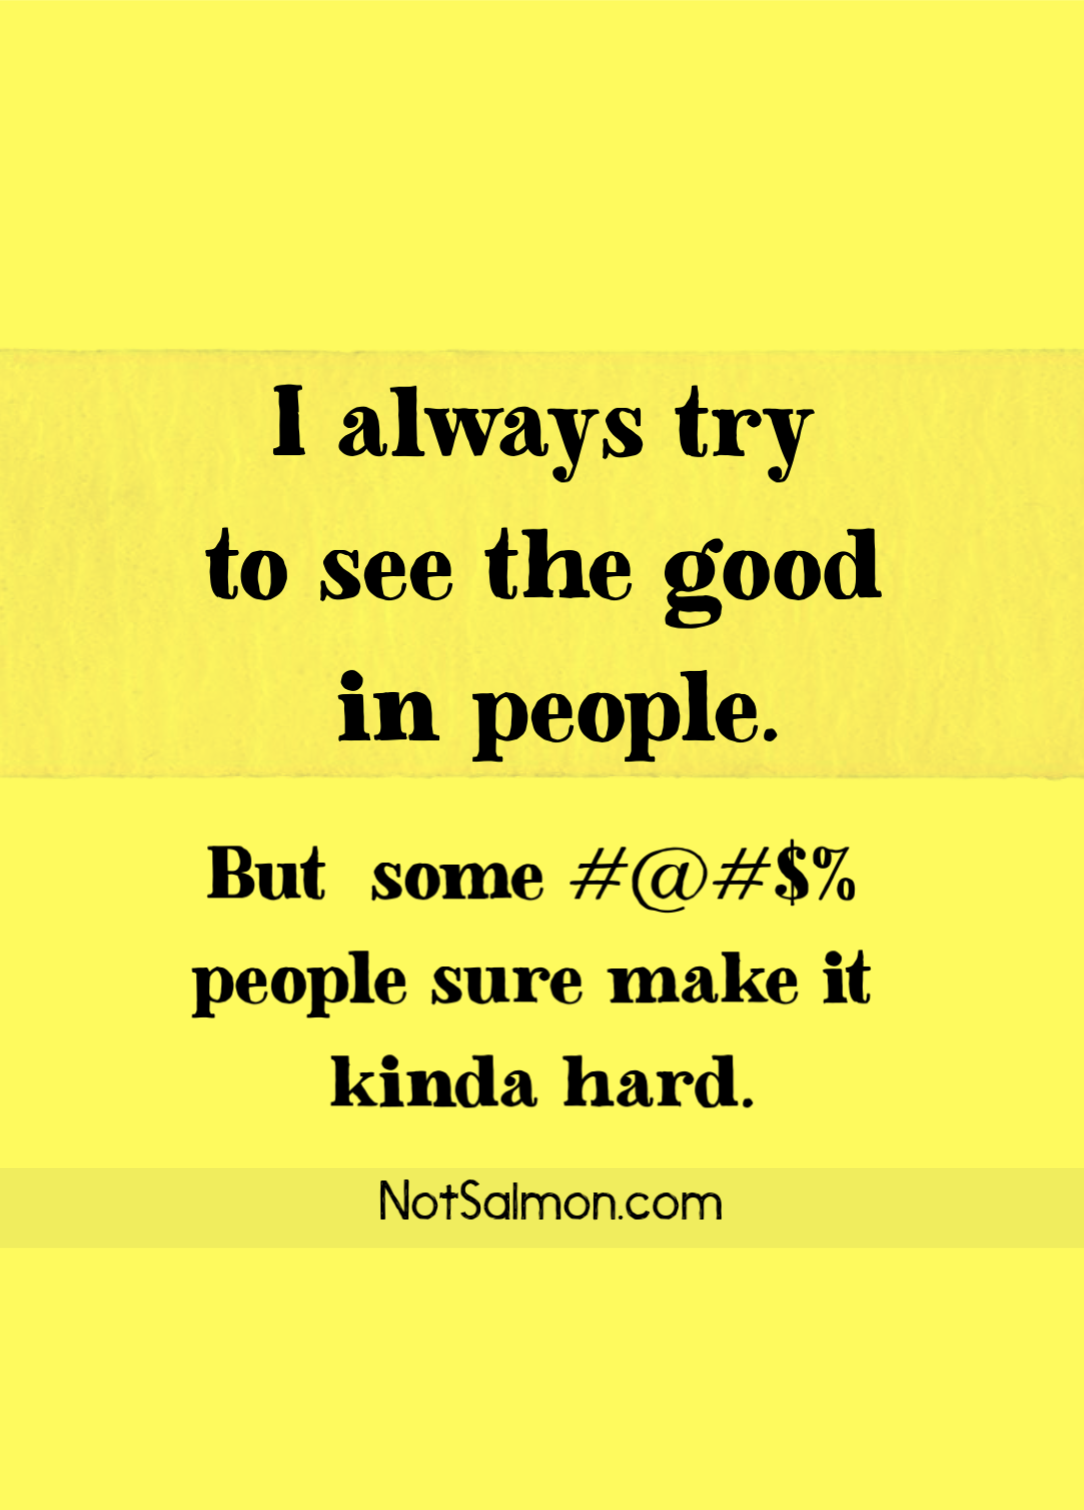 10 Funny Inspirational Quotes To Make You Smile And Think Funny Inspirational Quotes Funny Quotes Toxic People Quotes